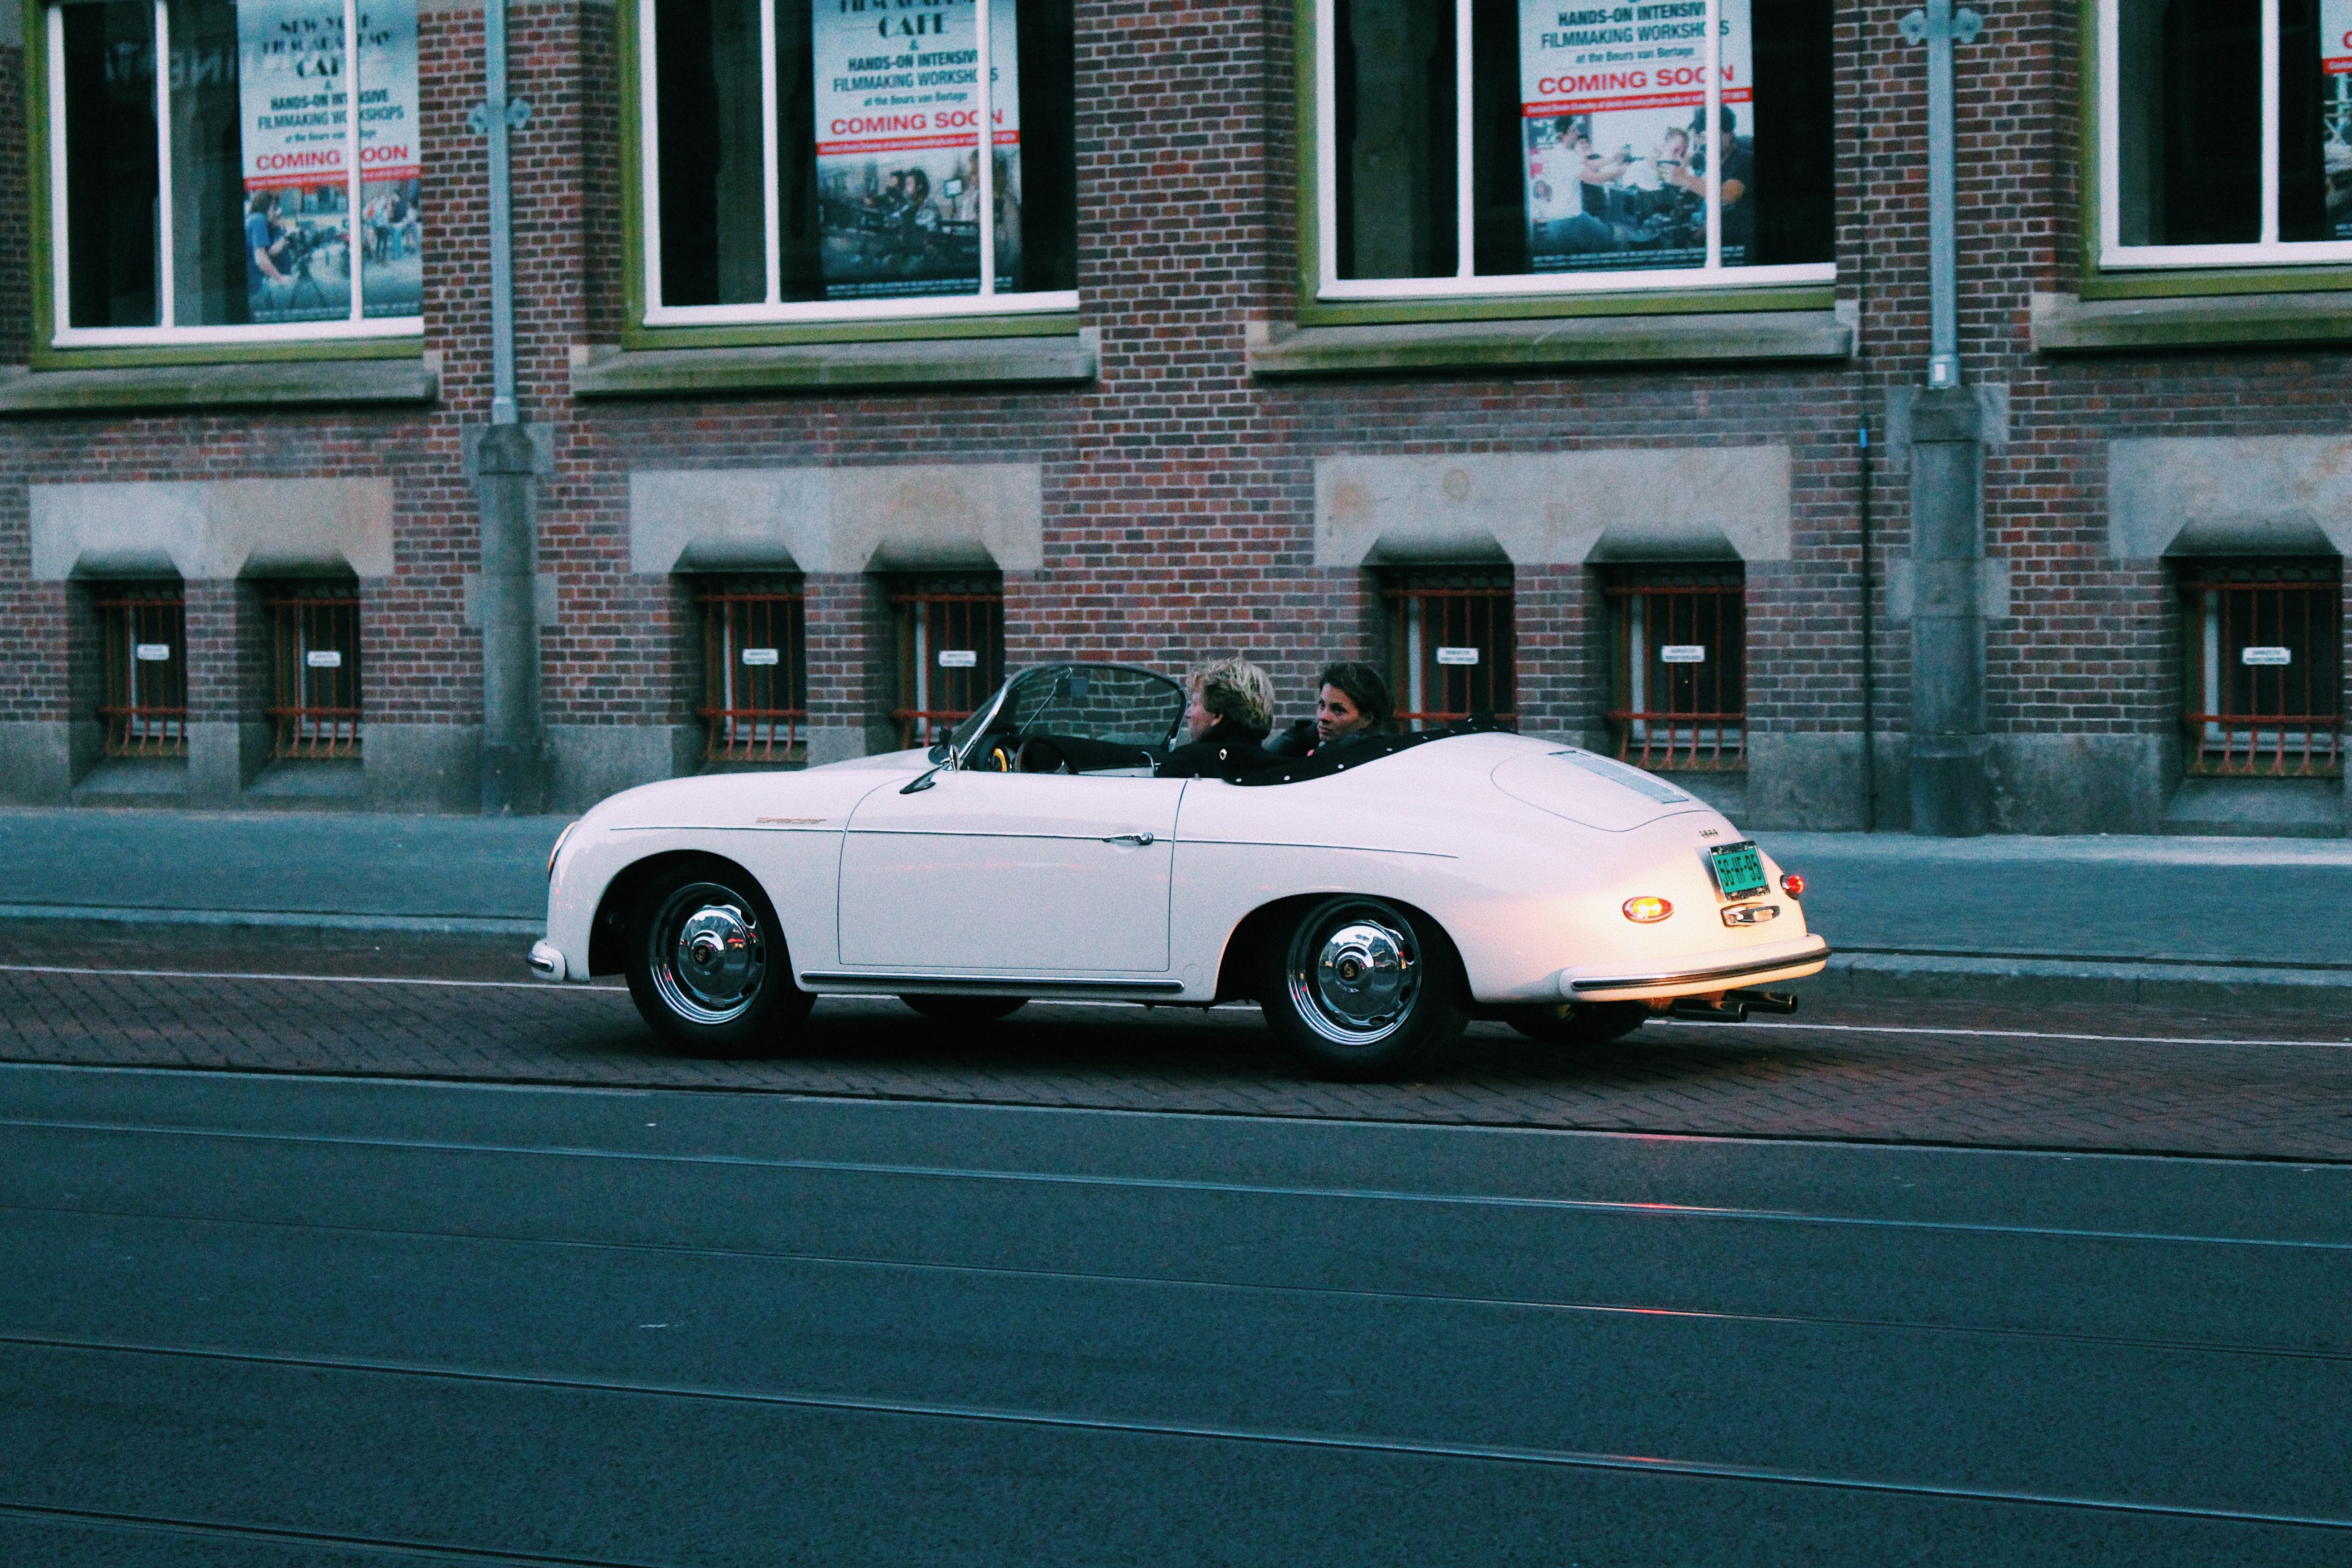 Two People Riding White Classic Convertible Car, Road, Road trip, Street, People, HQ Photo